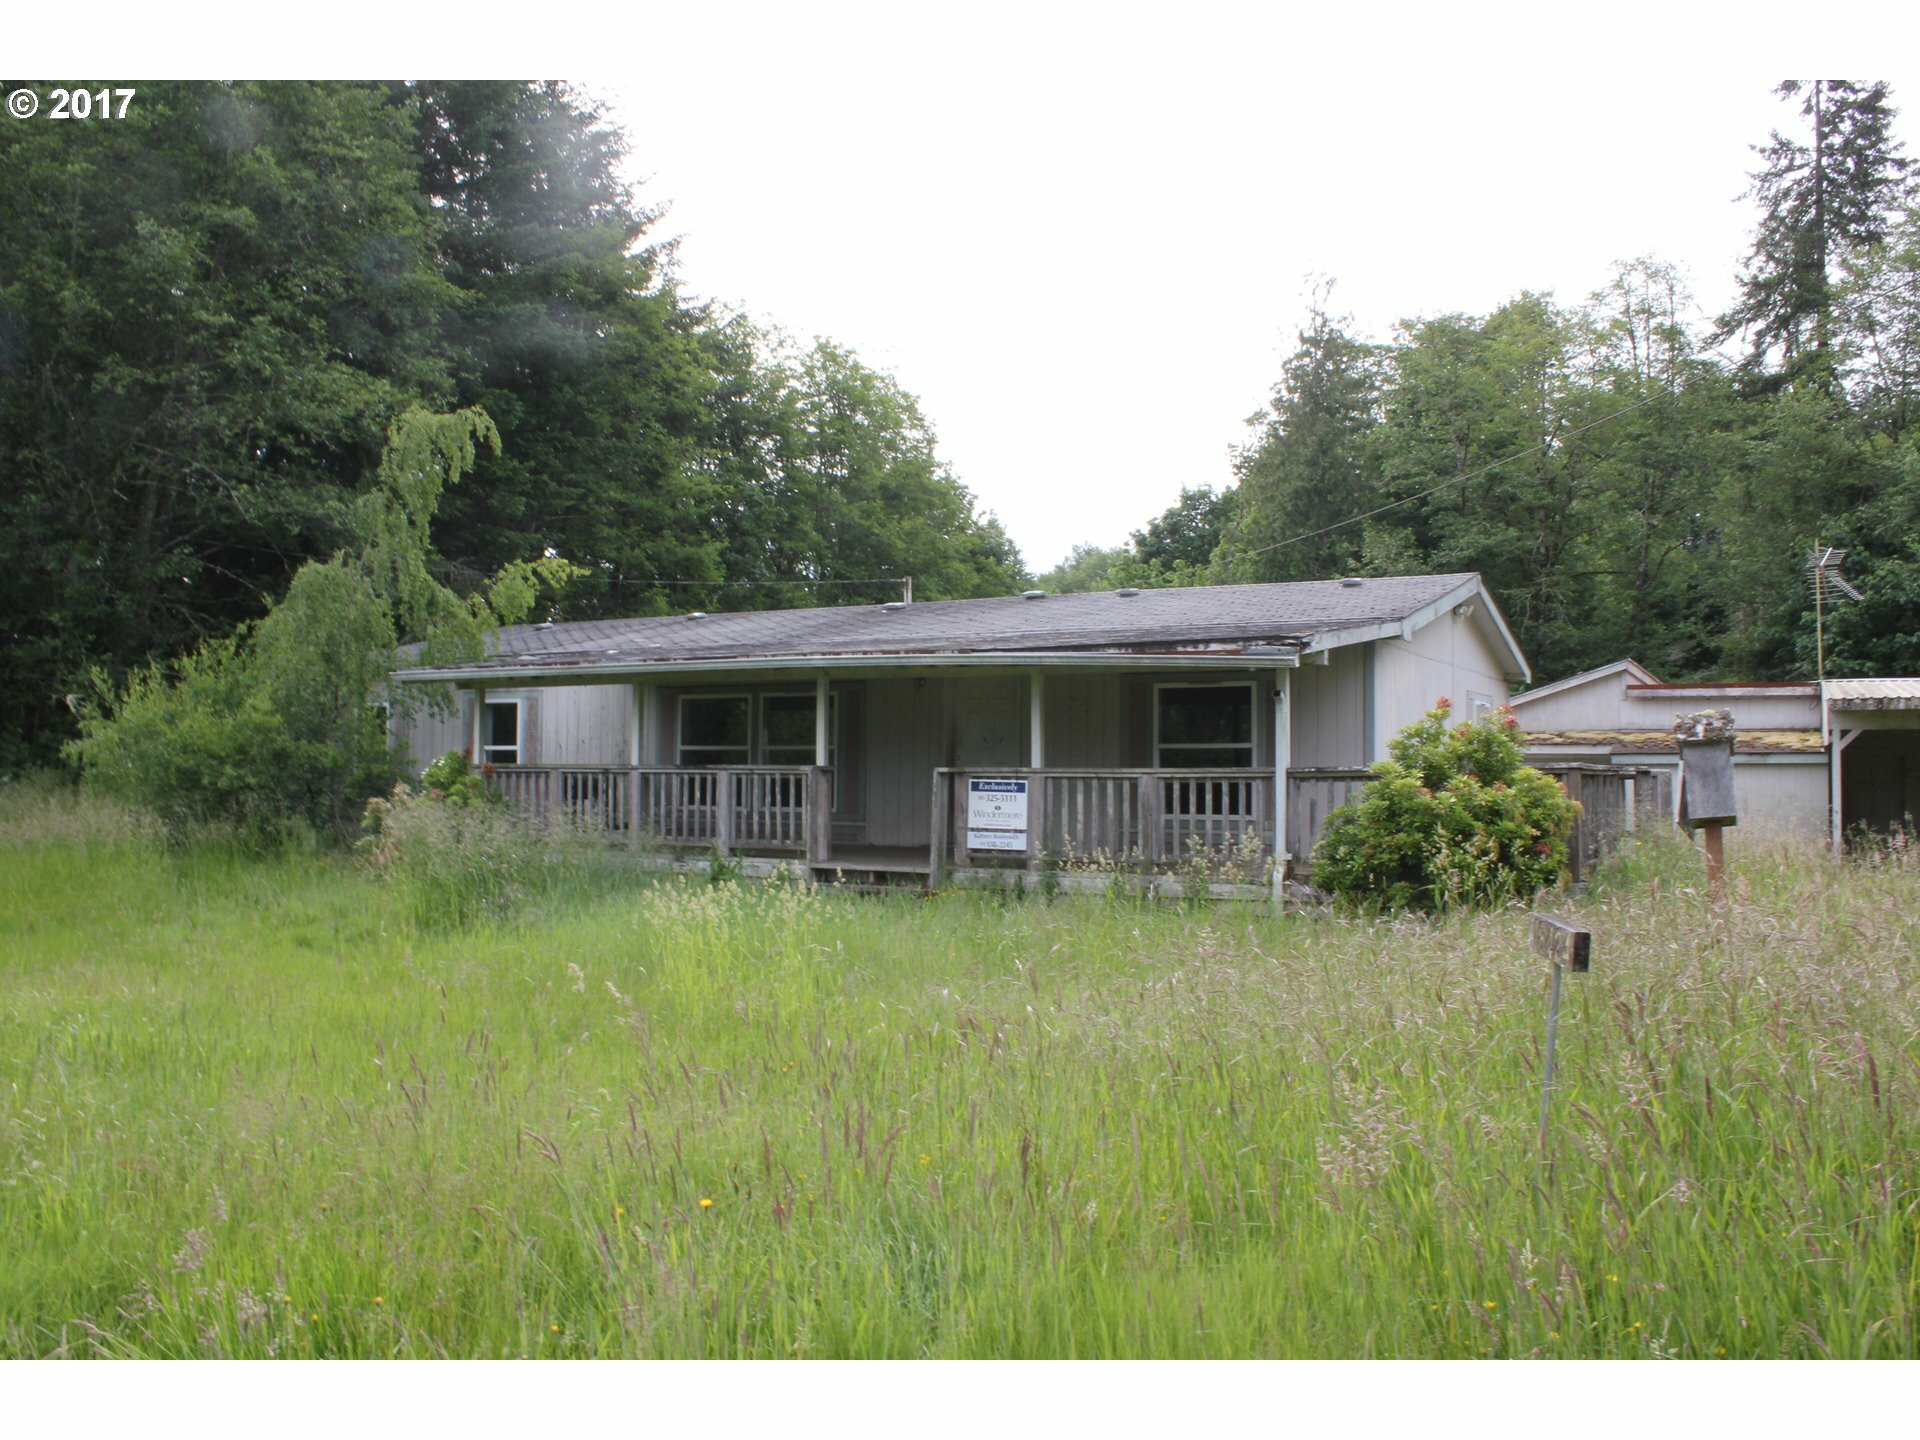 clatskanie singles Plenty of privacy on this beautiful 1716 acres just outside of clatskanie and also borders hwy 30 & hwy 47  style: single family residence agent contact.